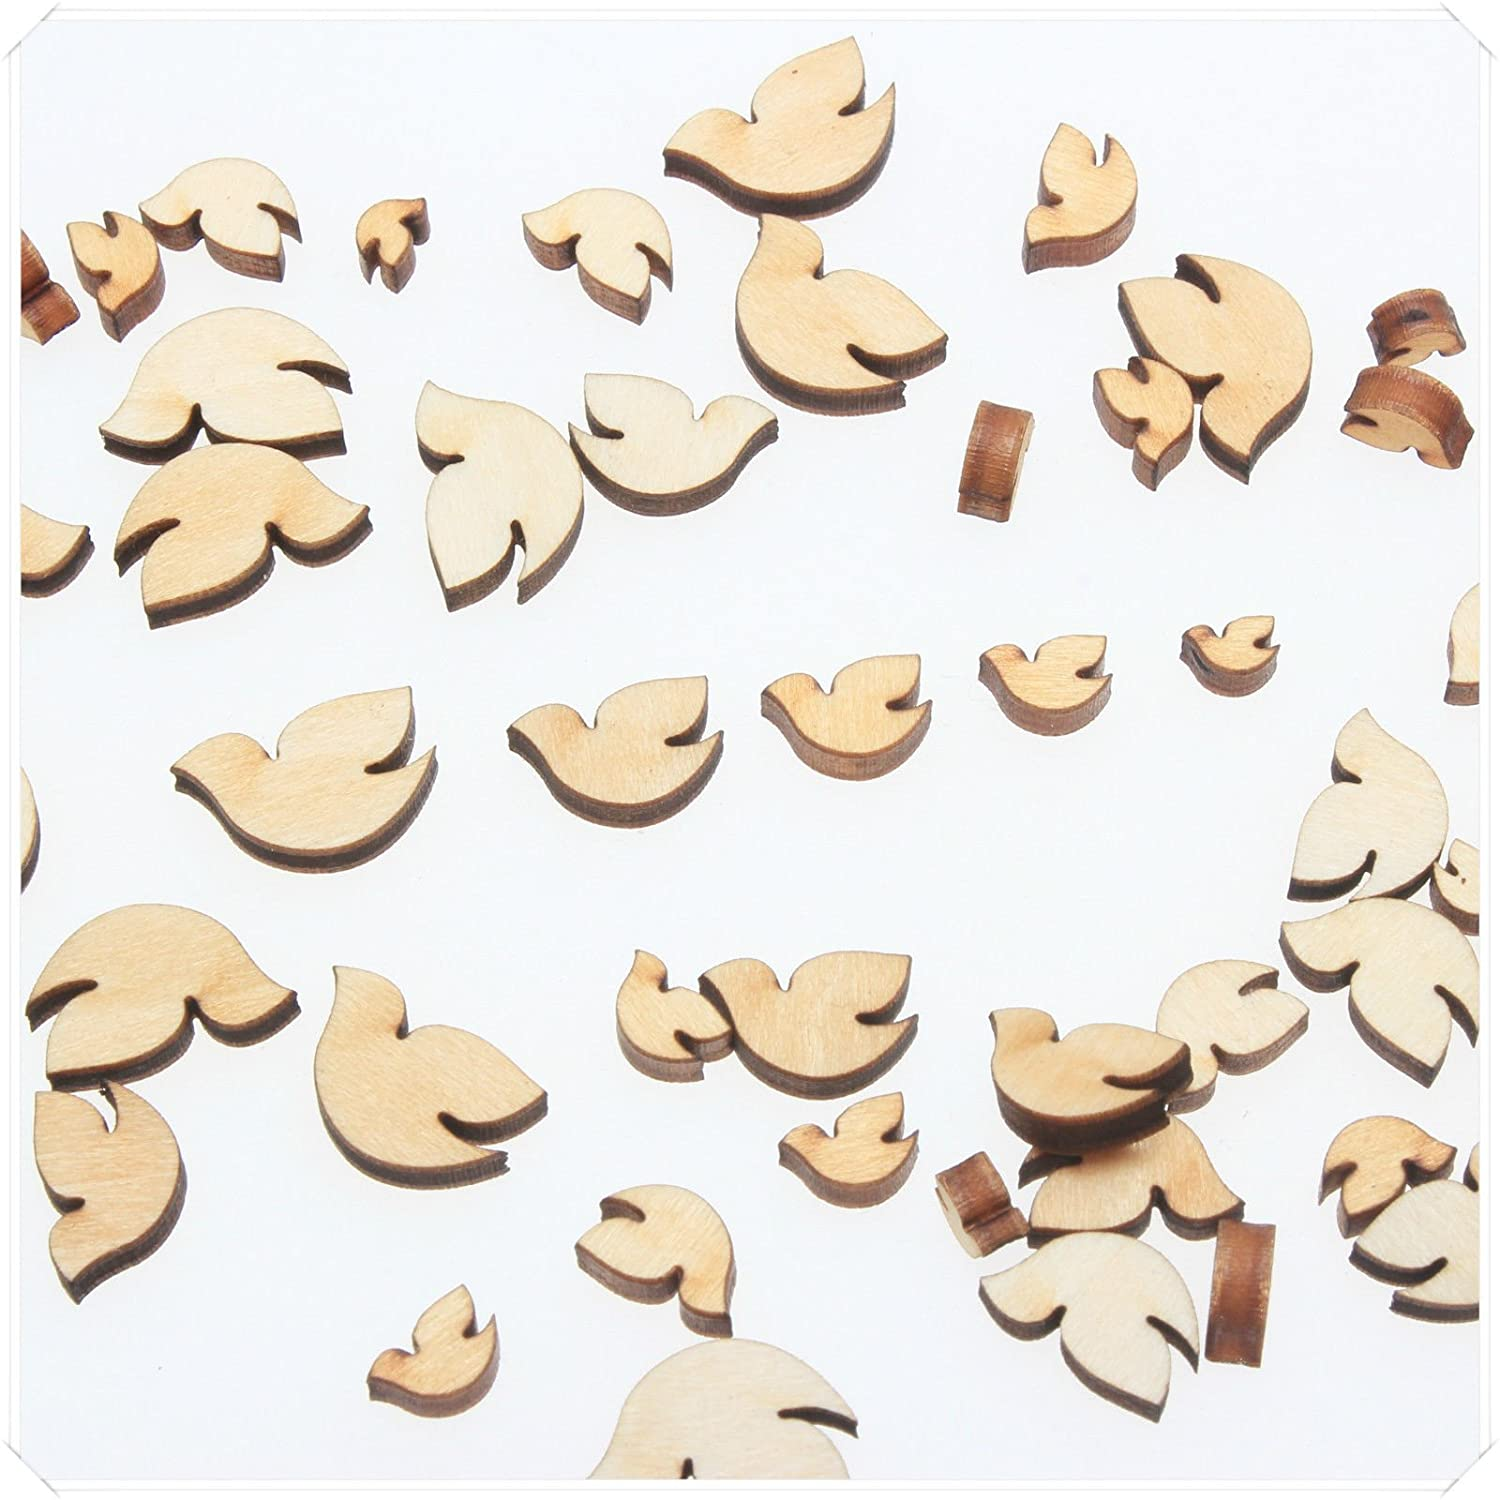 yuhoshop: 100 pcs [Dove Shaped] Mini Mixed Small Tiny Wooden Embellishments - Scrapbooking Shapes for Craft Decor Button